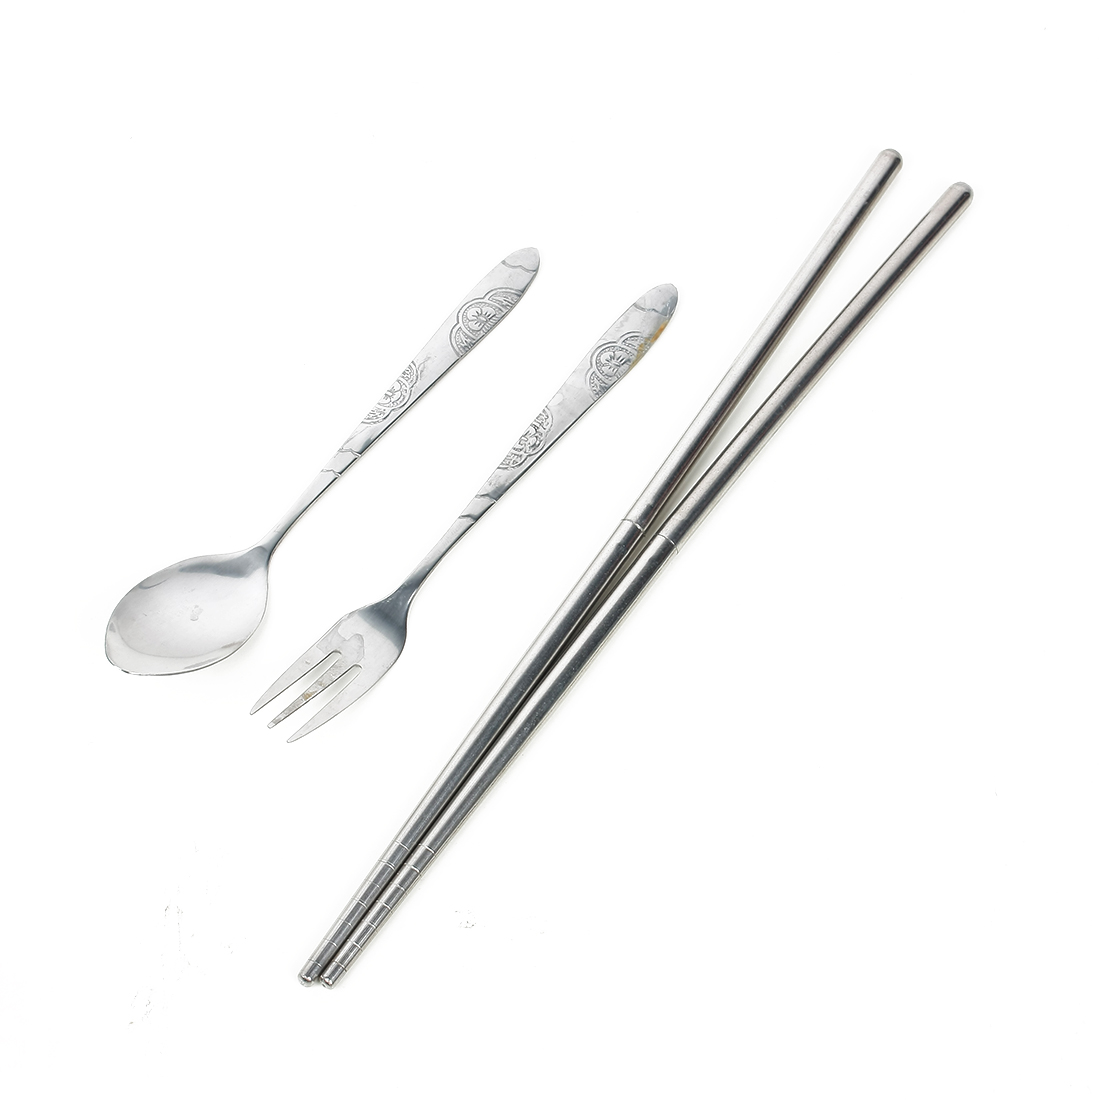 Casa-J Metal Chrysanthemum Style Spoon Fork Folding Chopsticks Cutlery Set 3 in 1